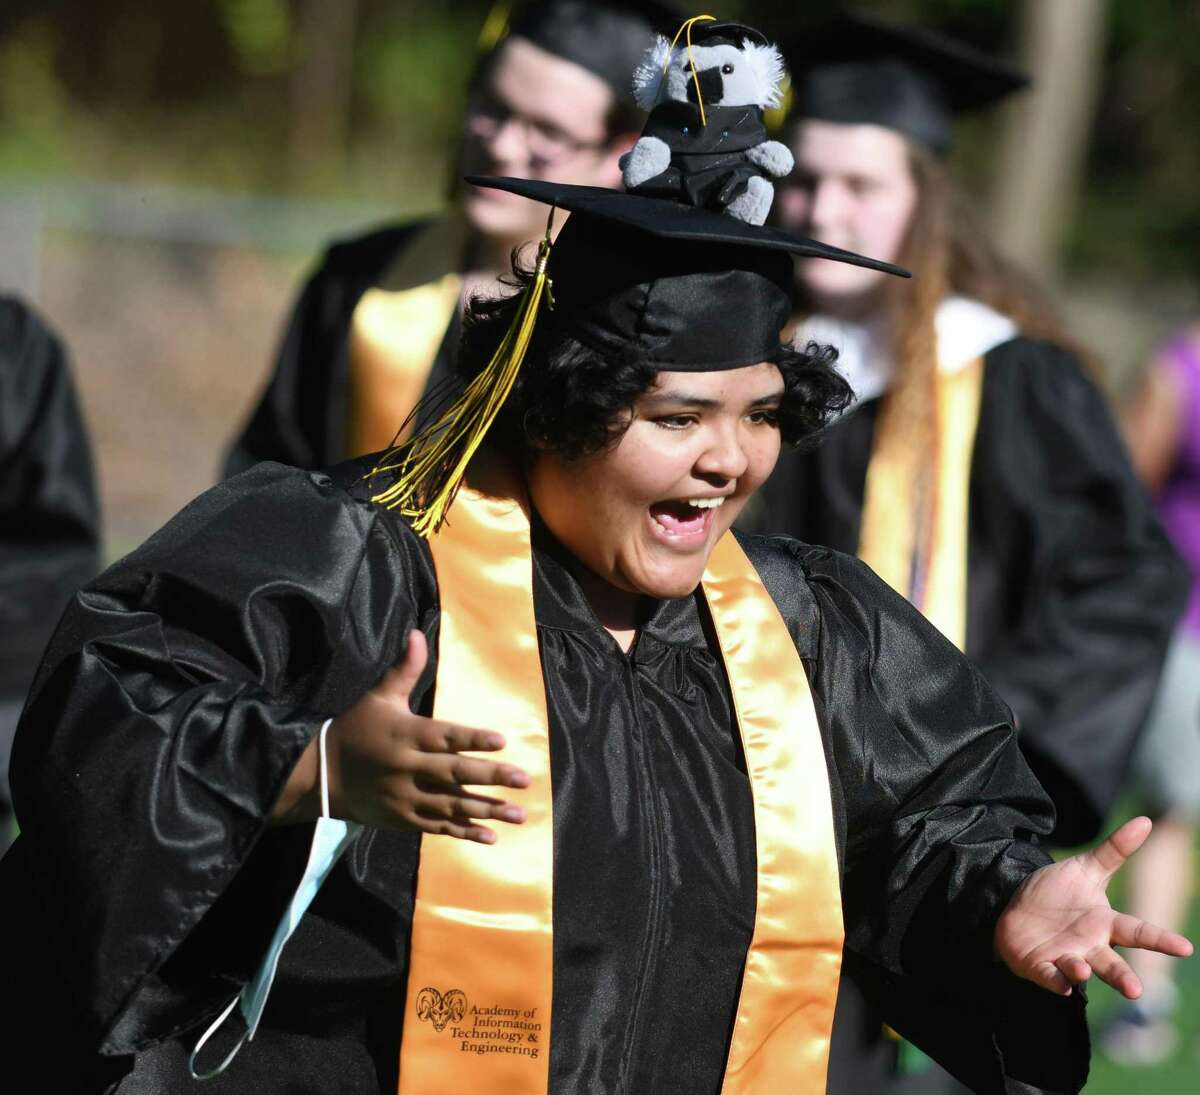 Madelyne Fajardo Polo receives her diploma at the Academy of Information Technology & Engineering (AITE) 2020-2021 commencement ceremony at the AITE campus in Stamford, Conn. Wednesday, June 16, 2021.